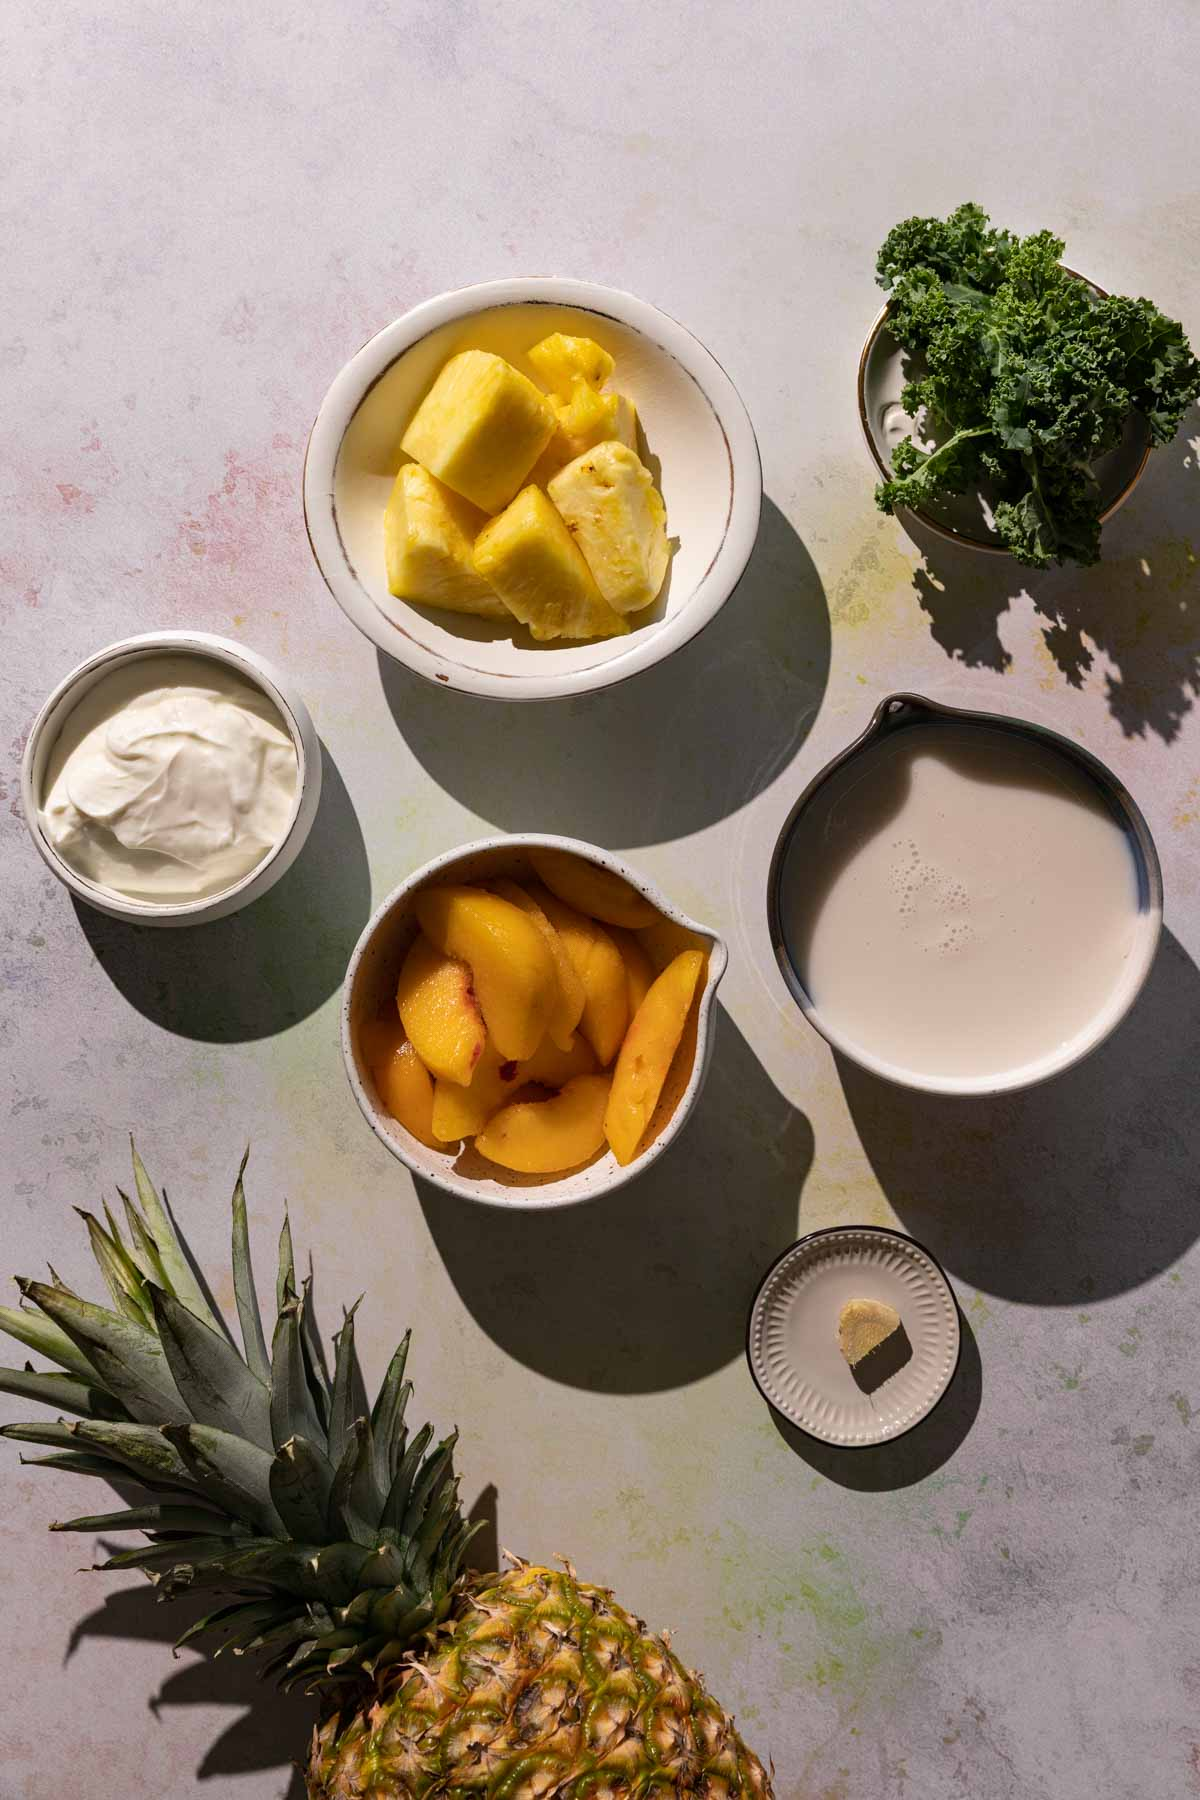 Ingredients for Pineapple Peach smoothie in bowls on a colorful background with whole pineapple